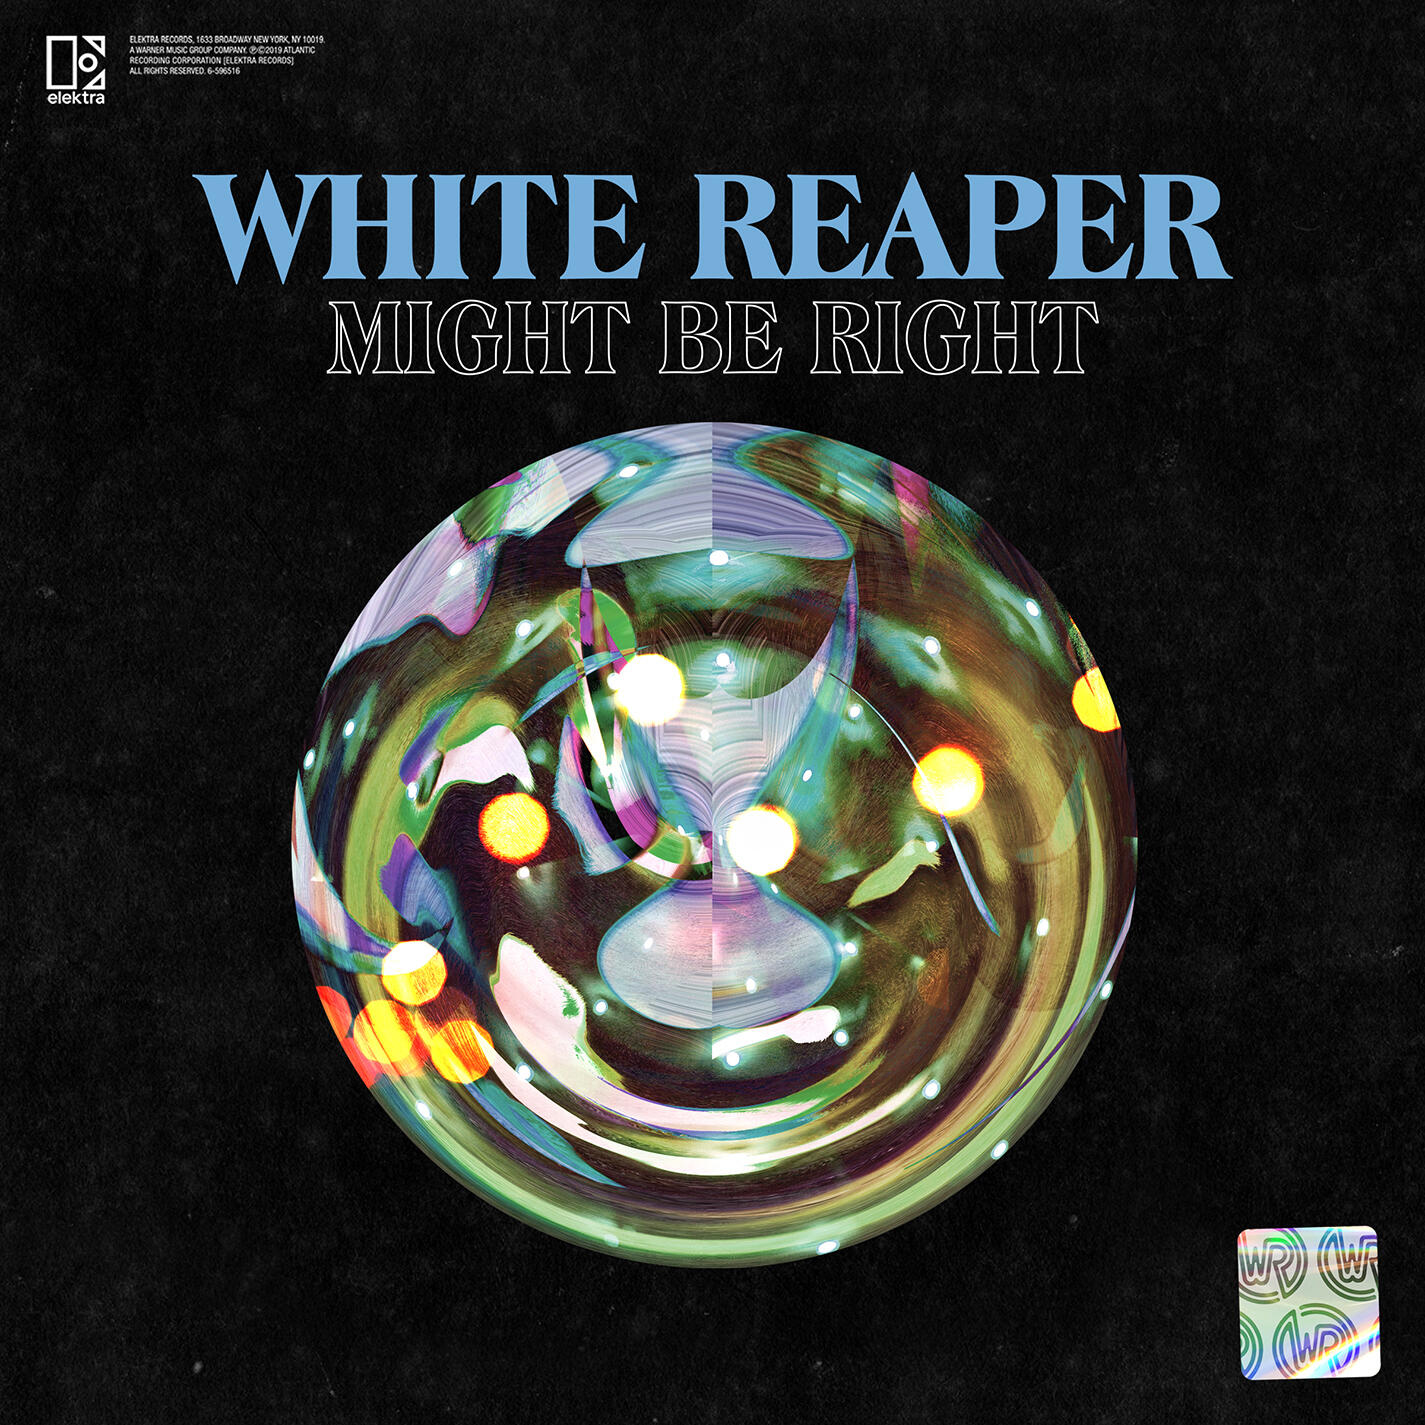 Listen Free to White Reaper - Might Be Right Radio on